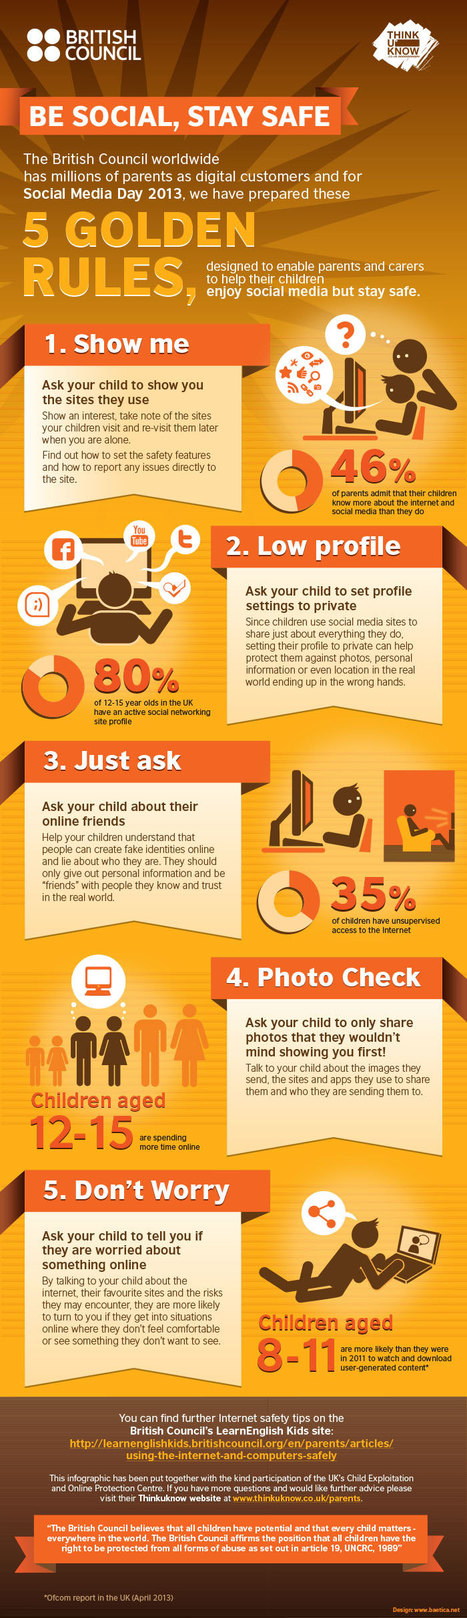 5 Ways To Help Keep Children Safe In Social Media #Infographic | MarketingHits | Scoop.it